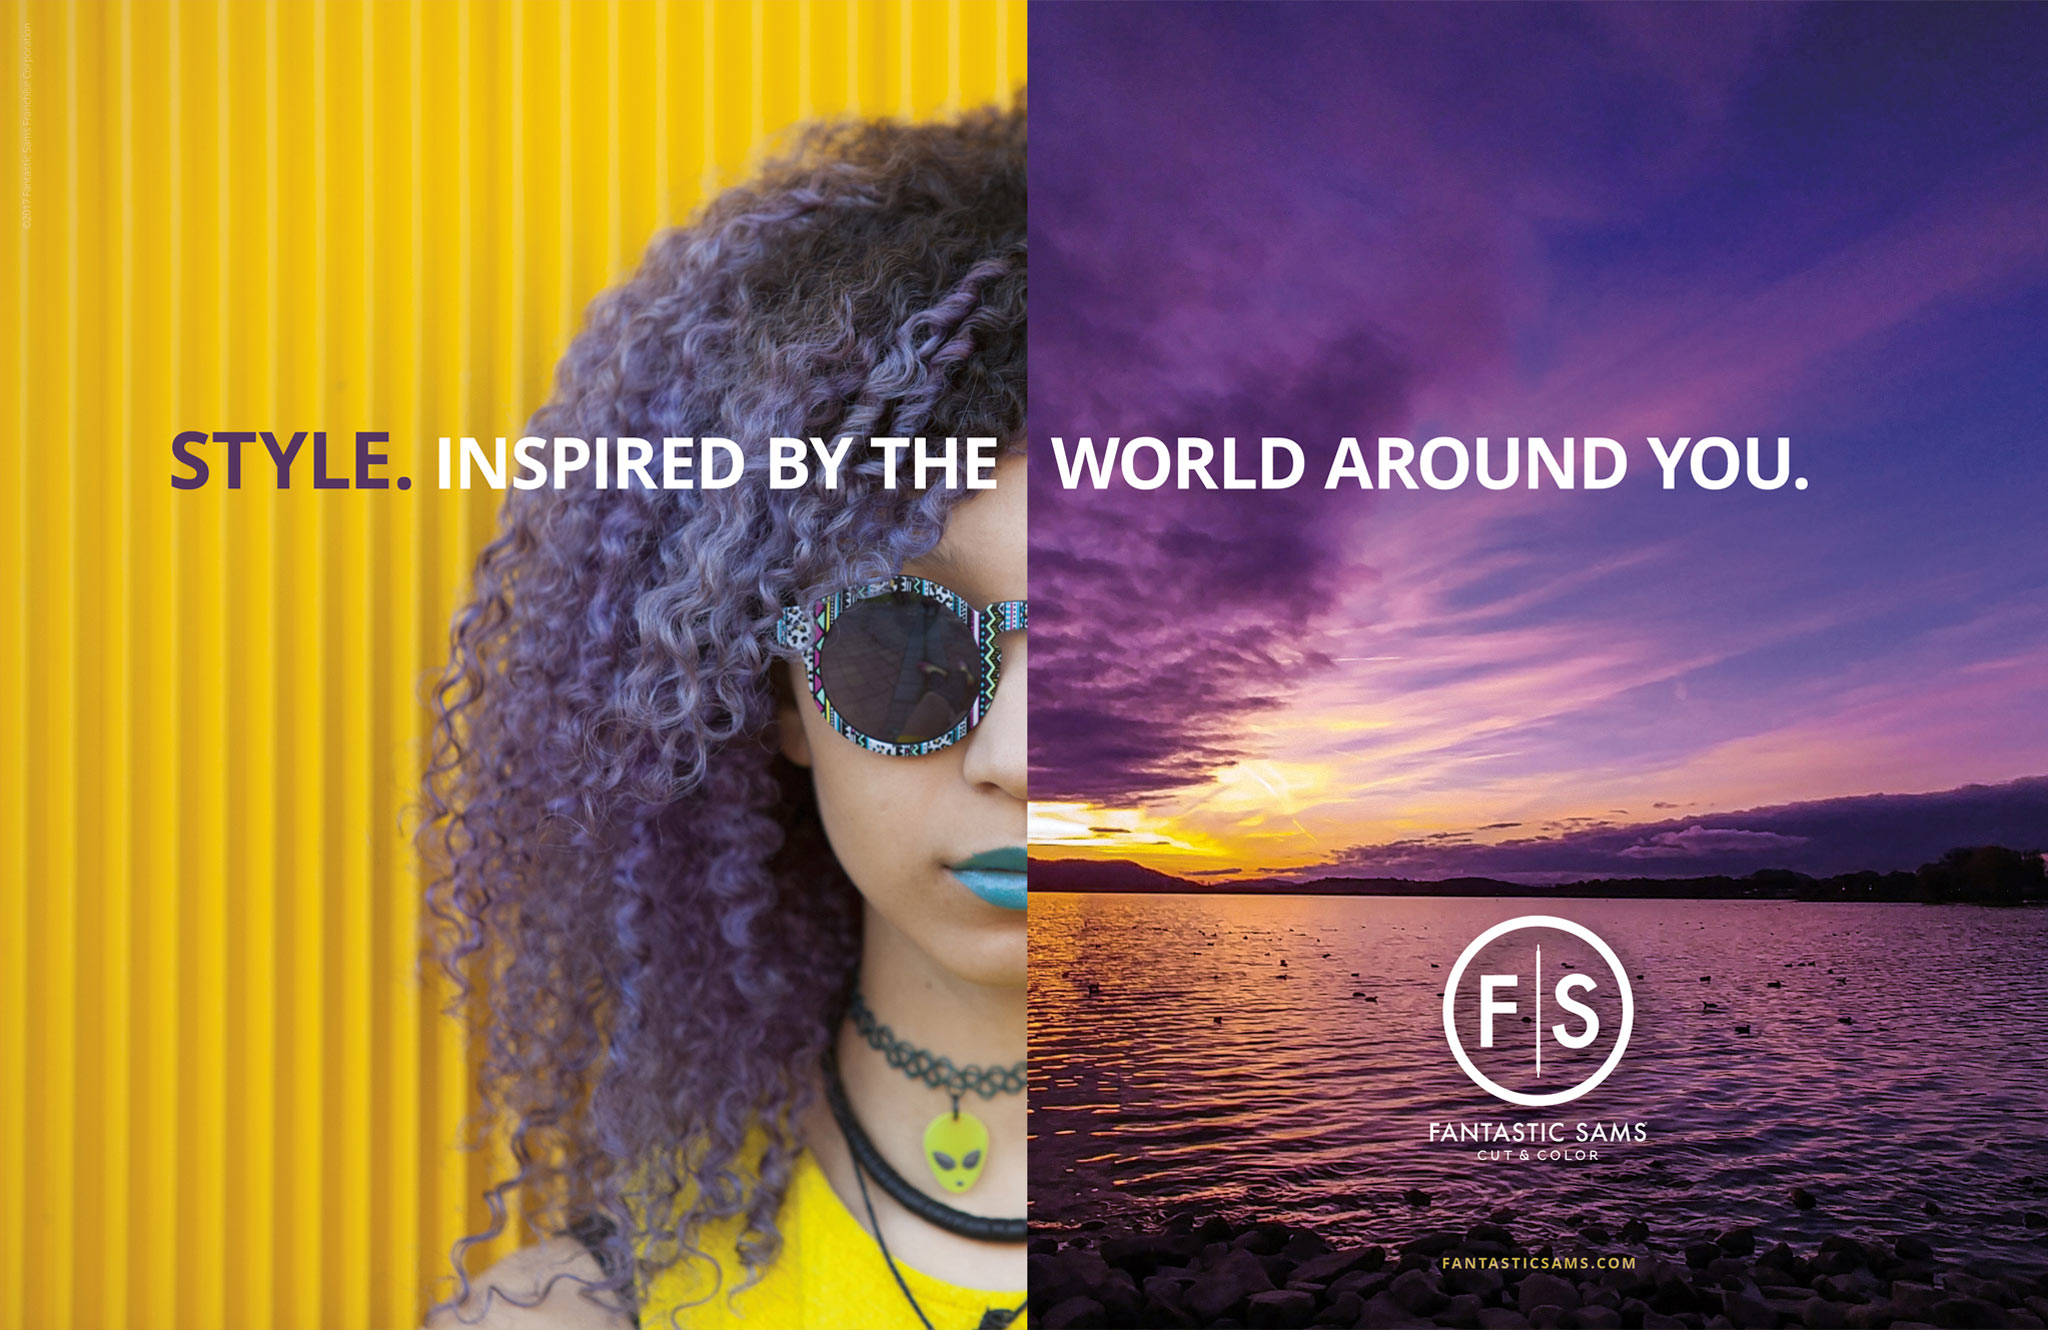 Fantastic Sams: Color Inspired by the World Print Ad